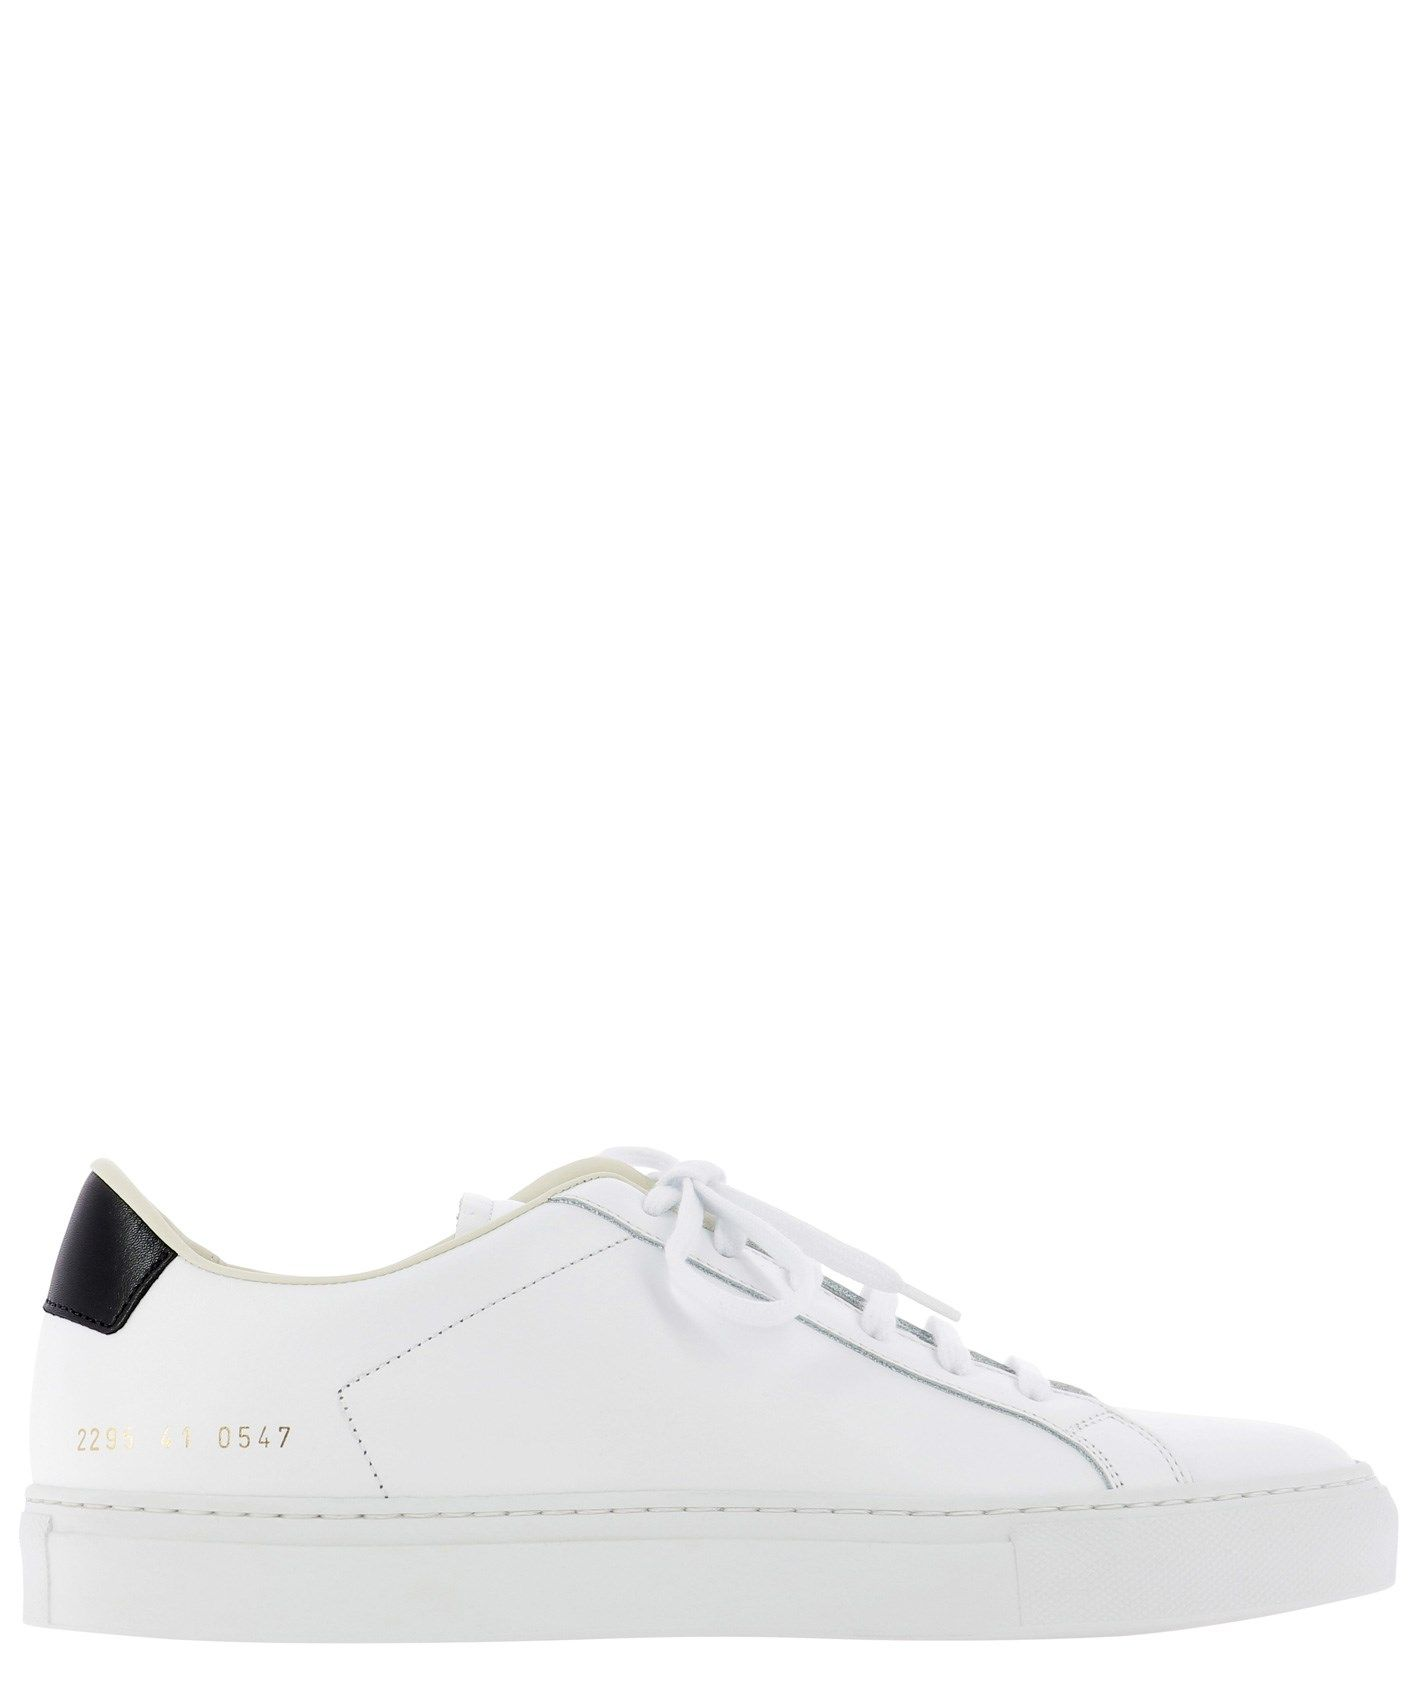 Common Projects COMMON PROJECTS MEN'S 22950547 WHITE OTHER MATERIALS SNEAKERS